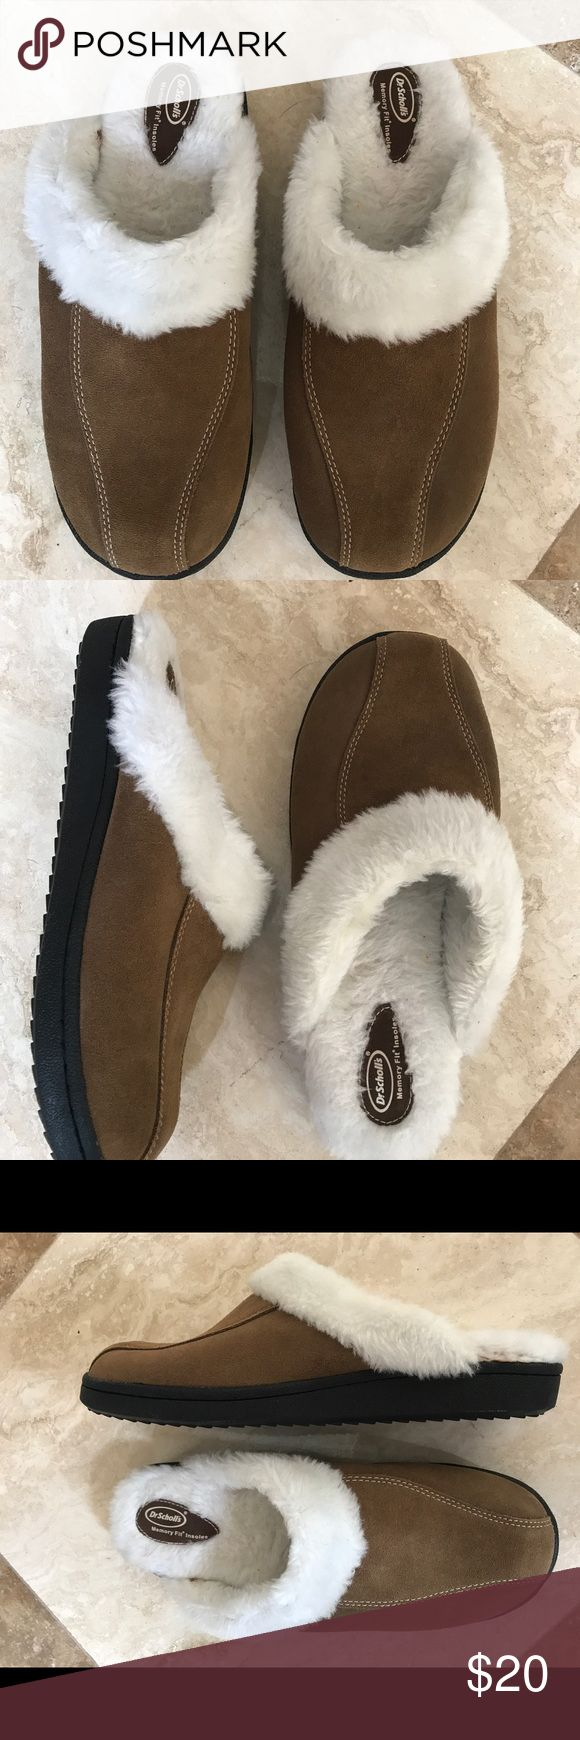 Dr. Scholl's brown leather slippers size  11 Get these fantastic cold-weather slippers for fall into winter. Pristine preowned condition. Size 11 measures 11 1/2 inches. Dr. Scholl's Shoes Slippers